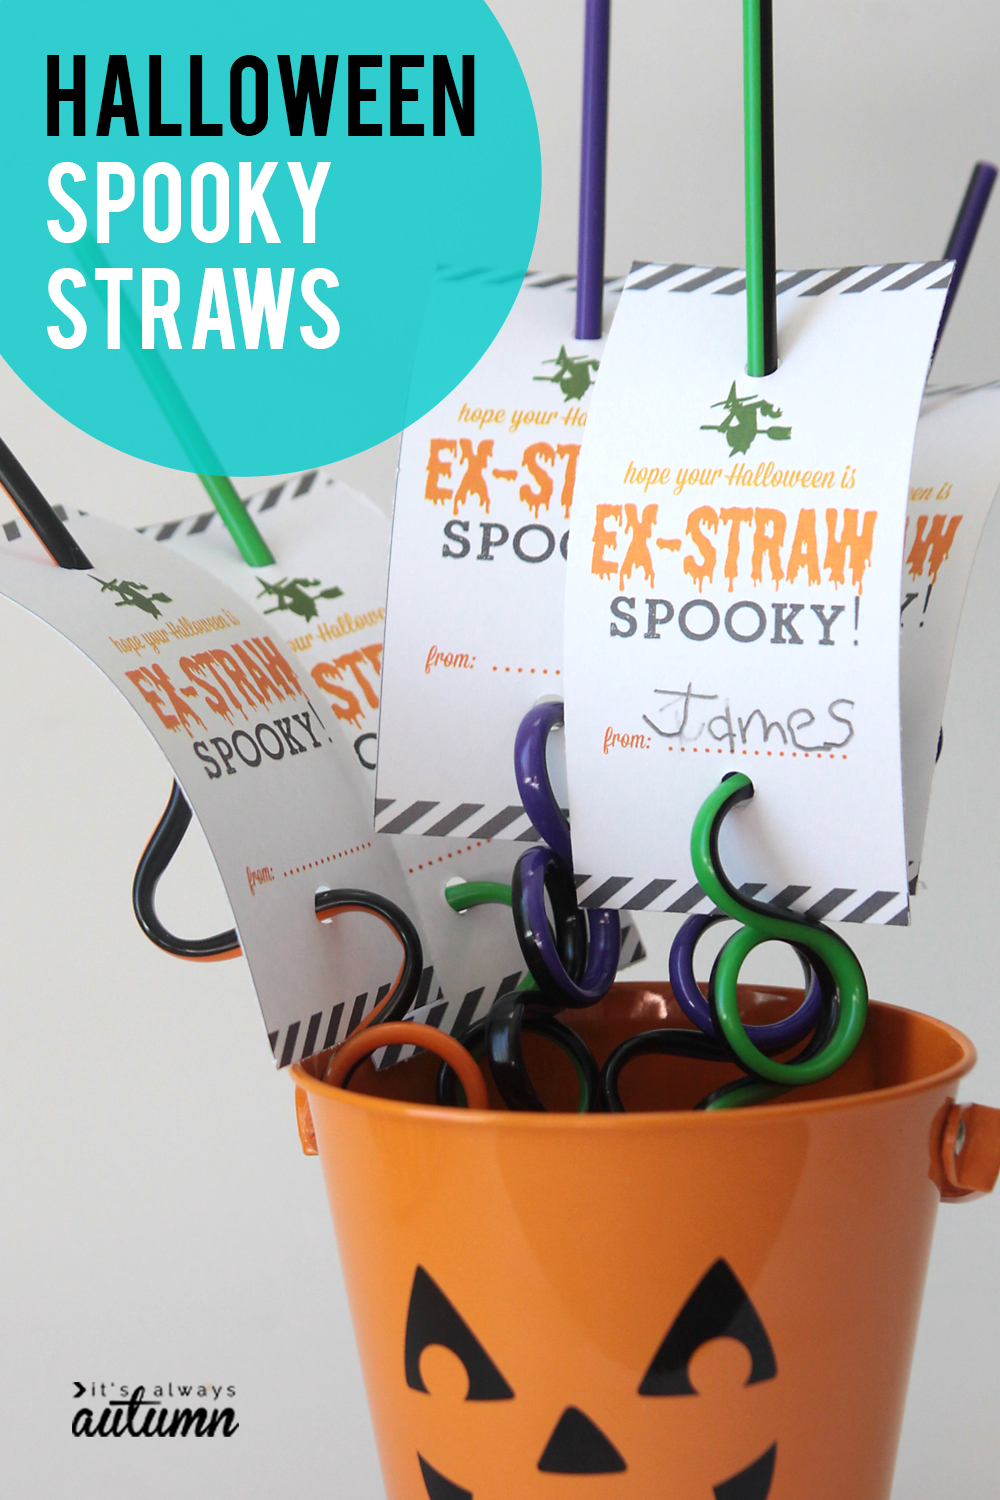 Spooky Halloween straws! Great non-candy Halloween treat or gift idea.